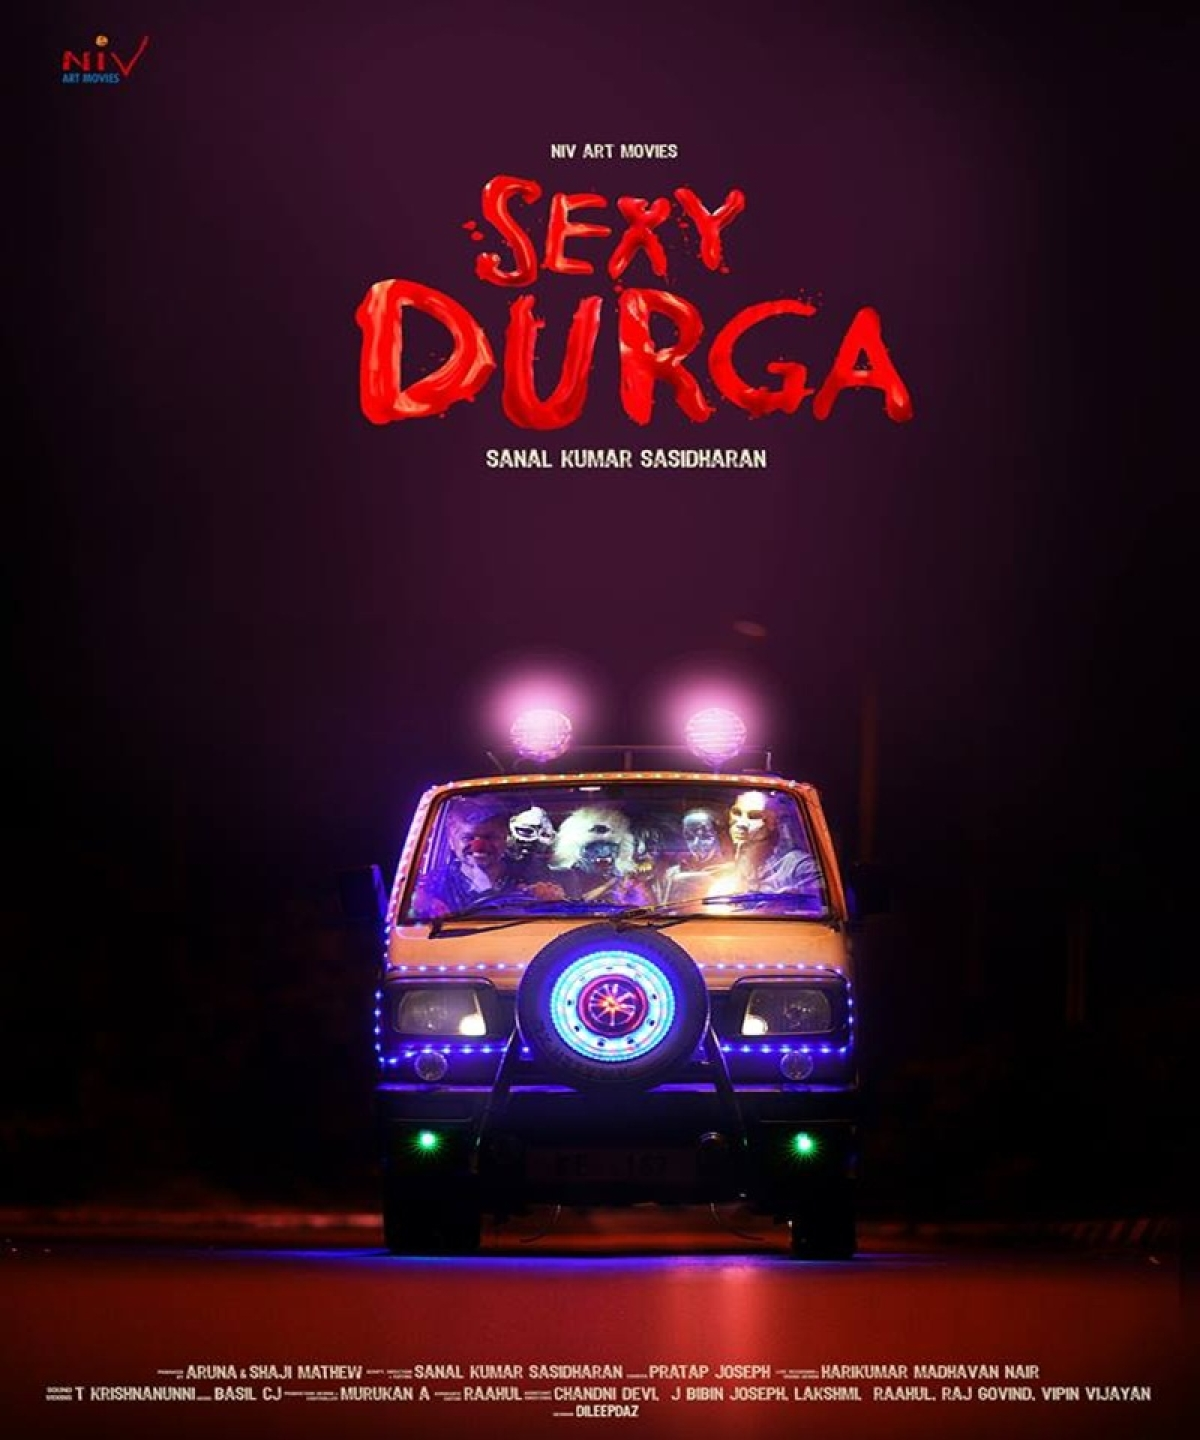 S Durga's director says, I&B Ministry is doing unconstitutional, unprecedented thing